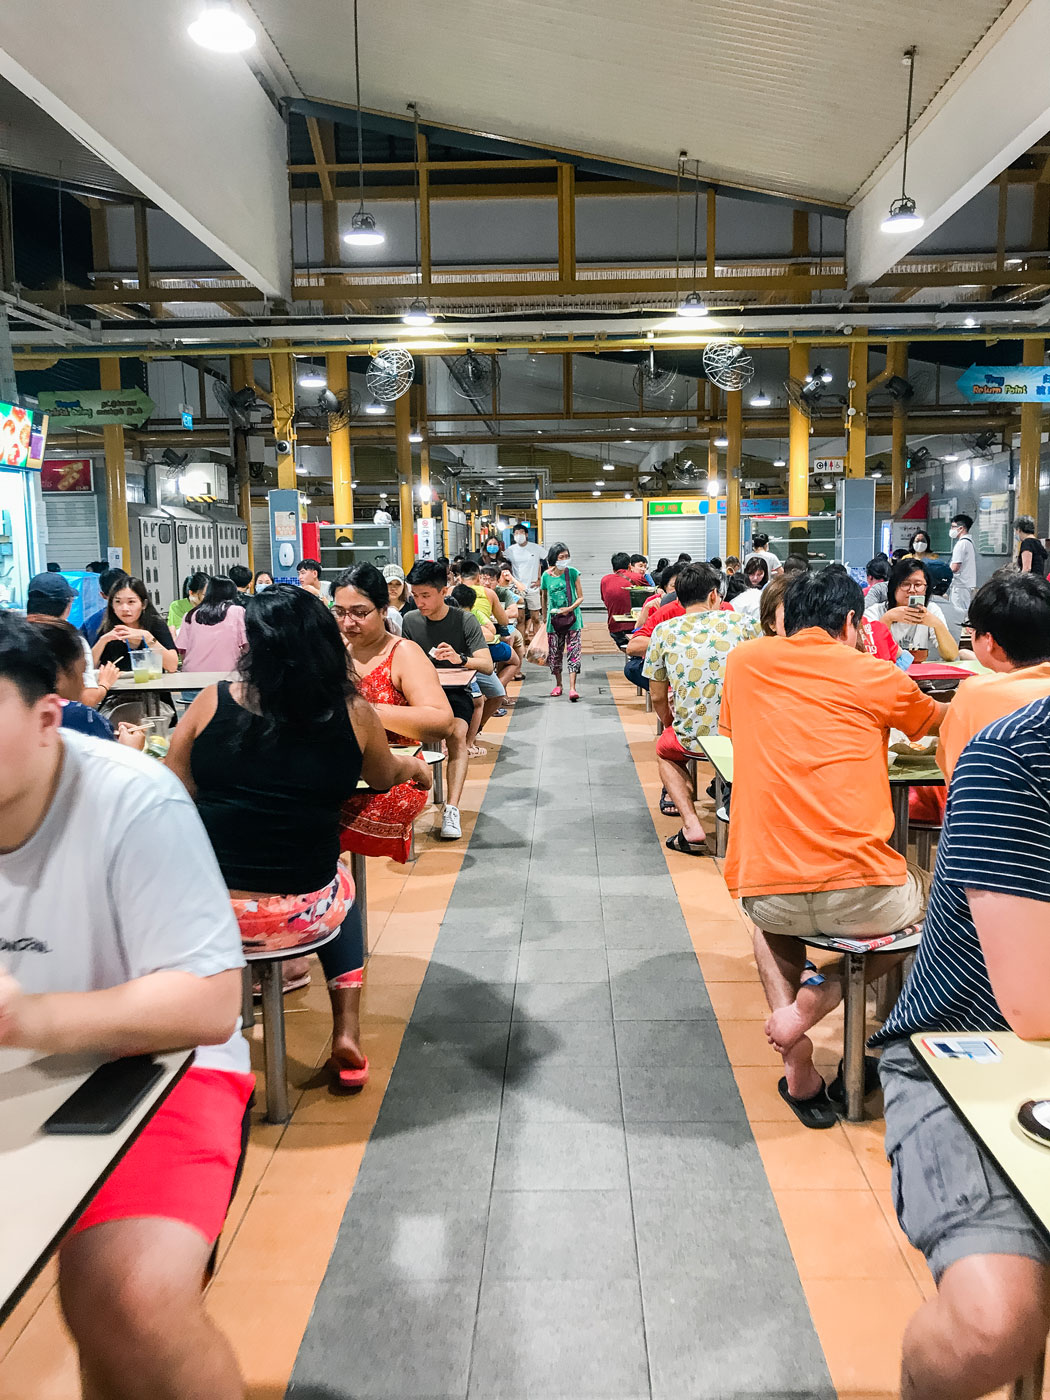 A community of people sitting down to eat.